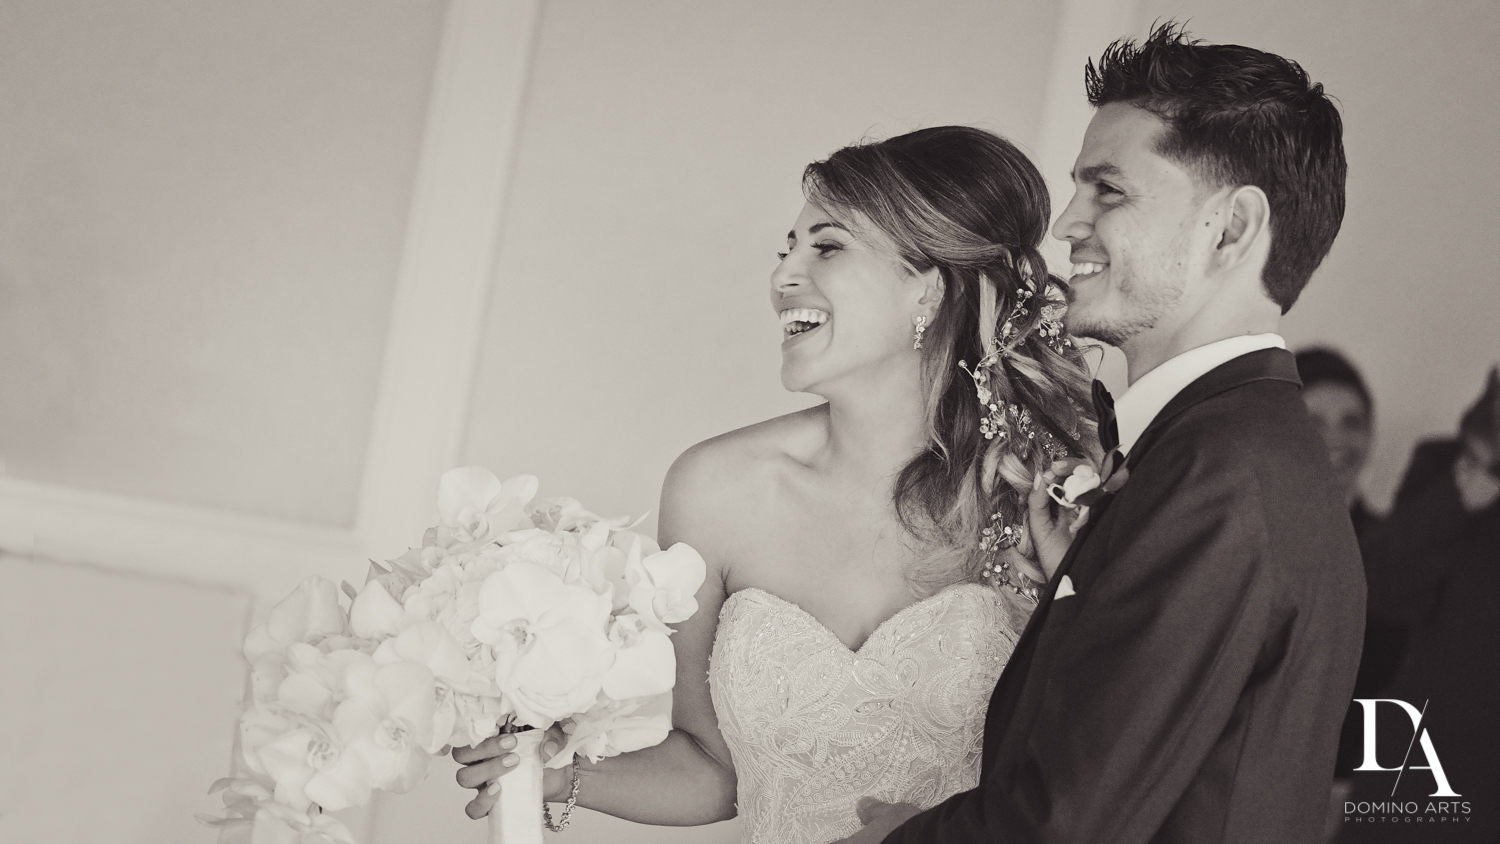 Lifestyle wedding picture of bride and groom at The Addison Boca Raton wedding photography